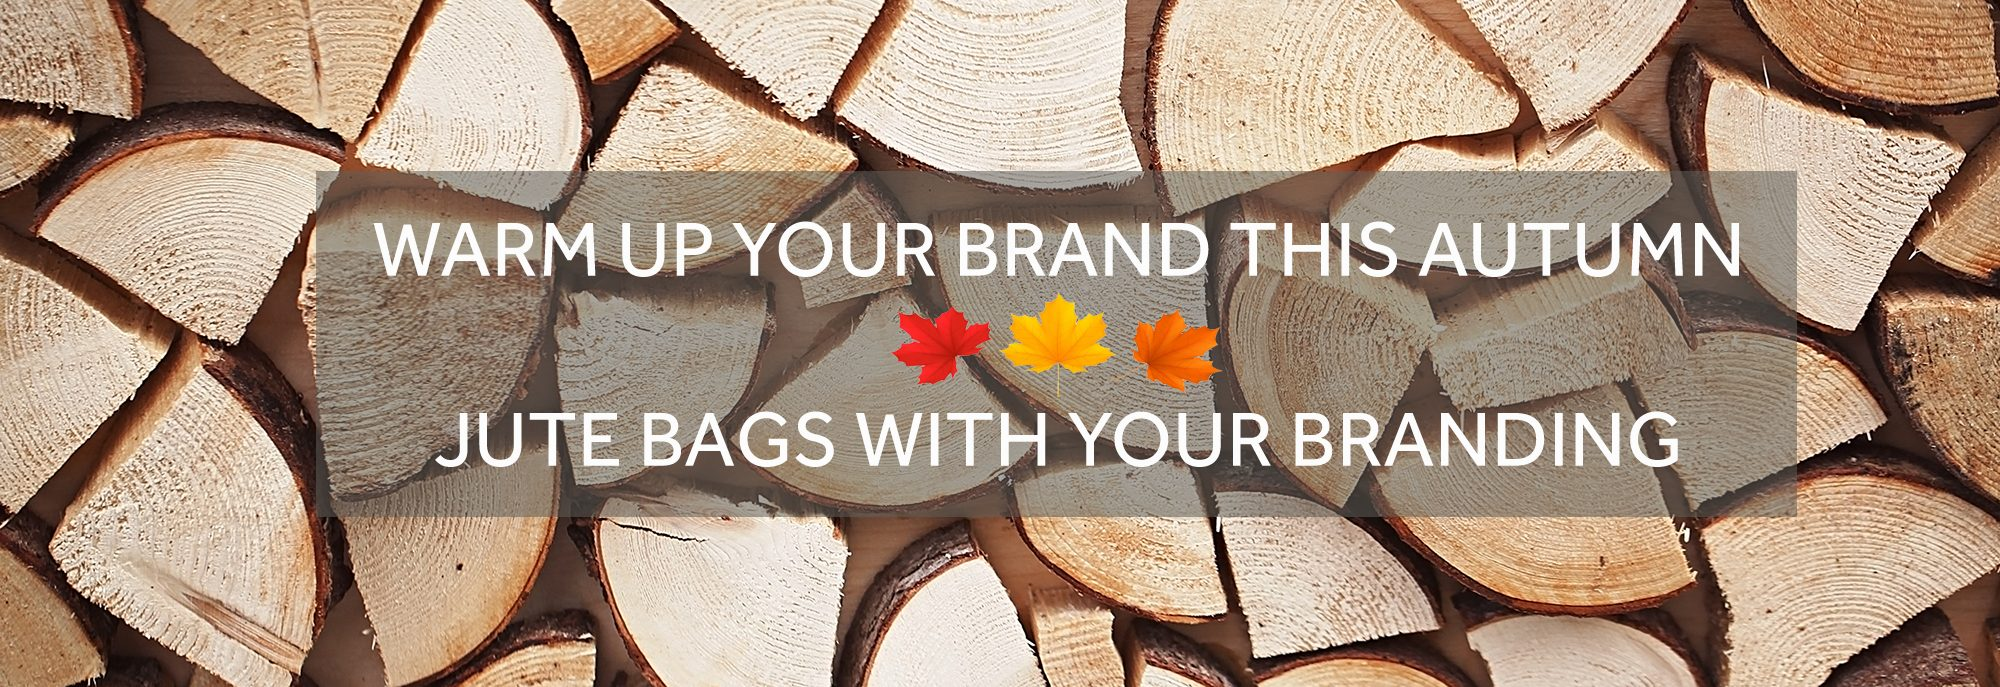 autumn branded bags